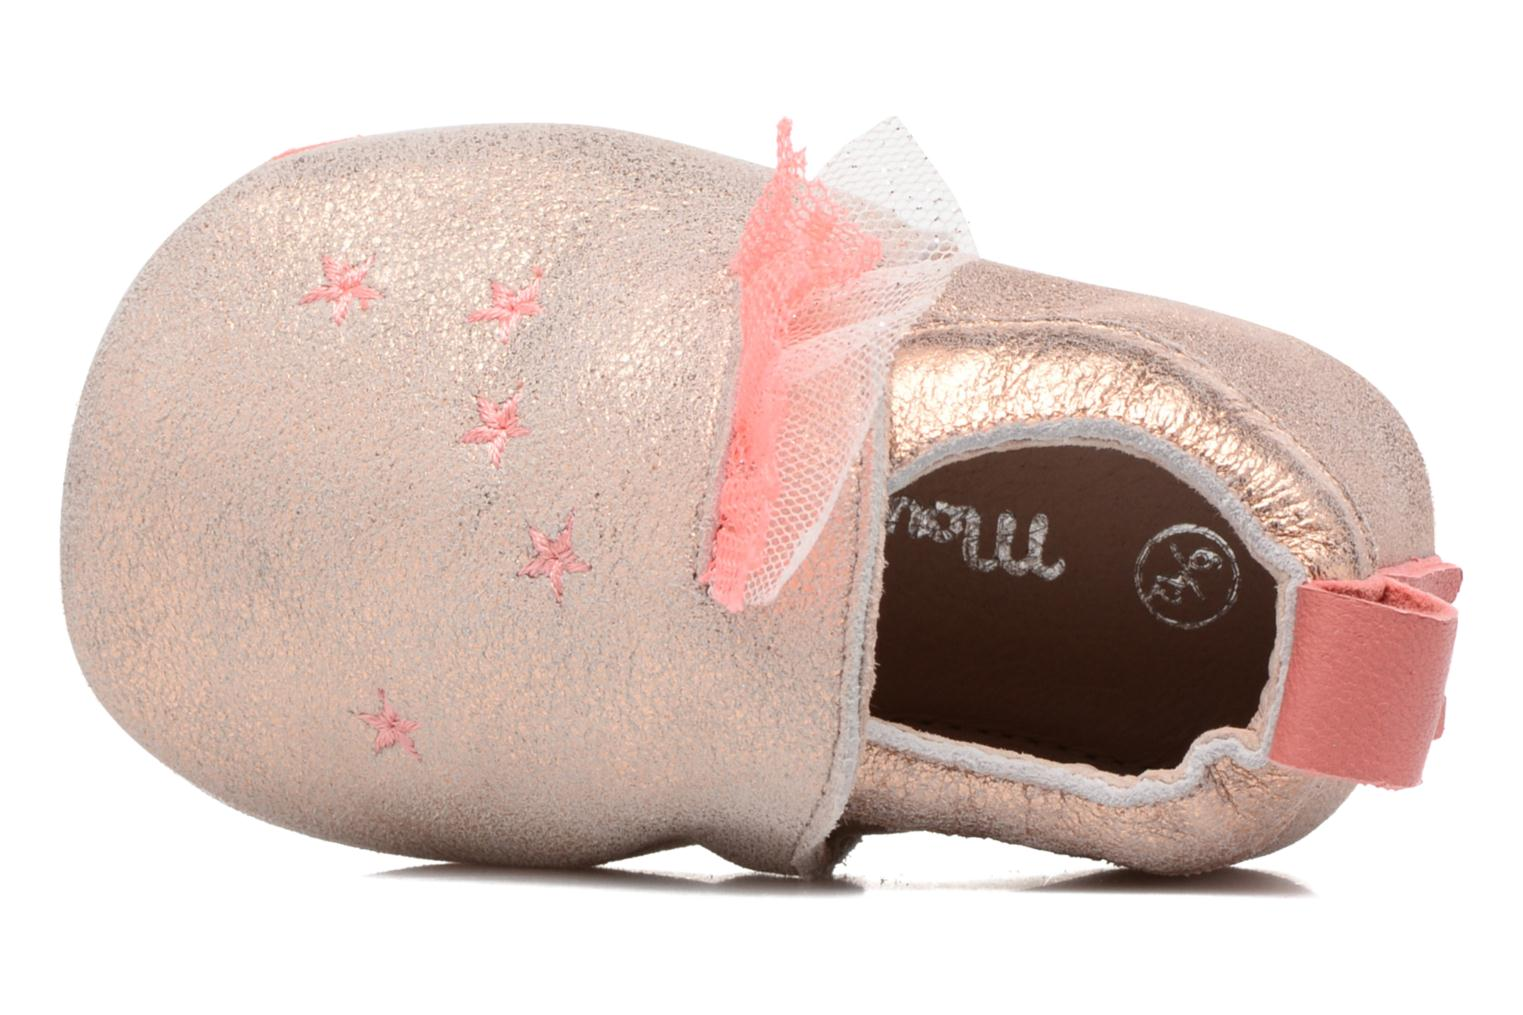 Chaussons Babybotte Etoiles - Moulin Roty Or et bronze vue gauche